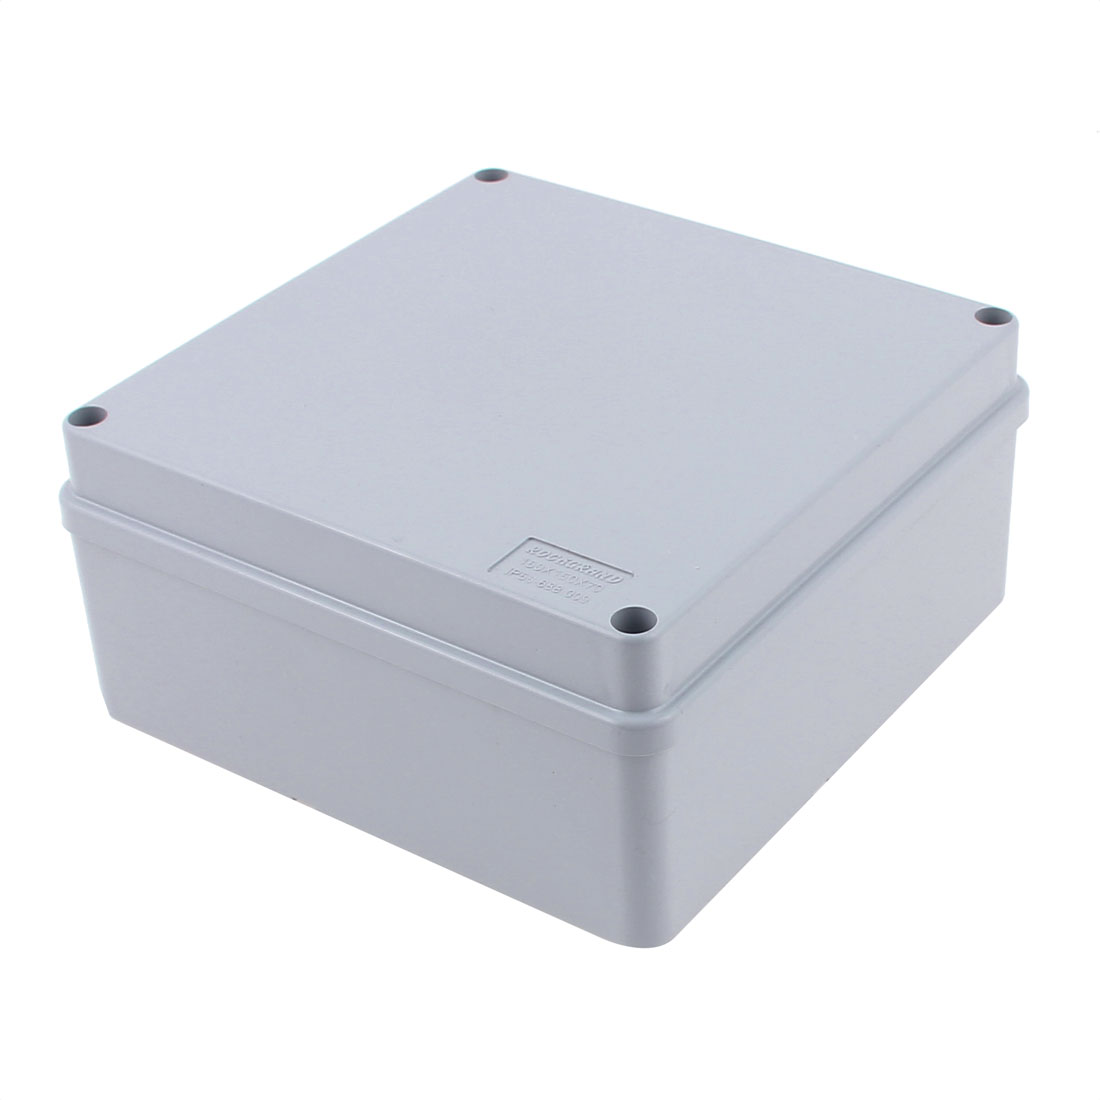 150 x 150 x 70mm Dustproof IP65 Junction Box DIY Sealed Connecting Box Enclosure